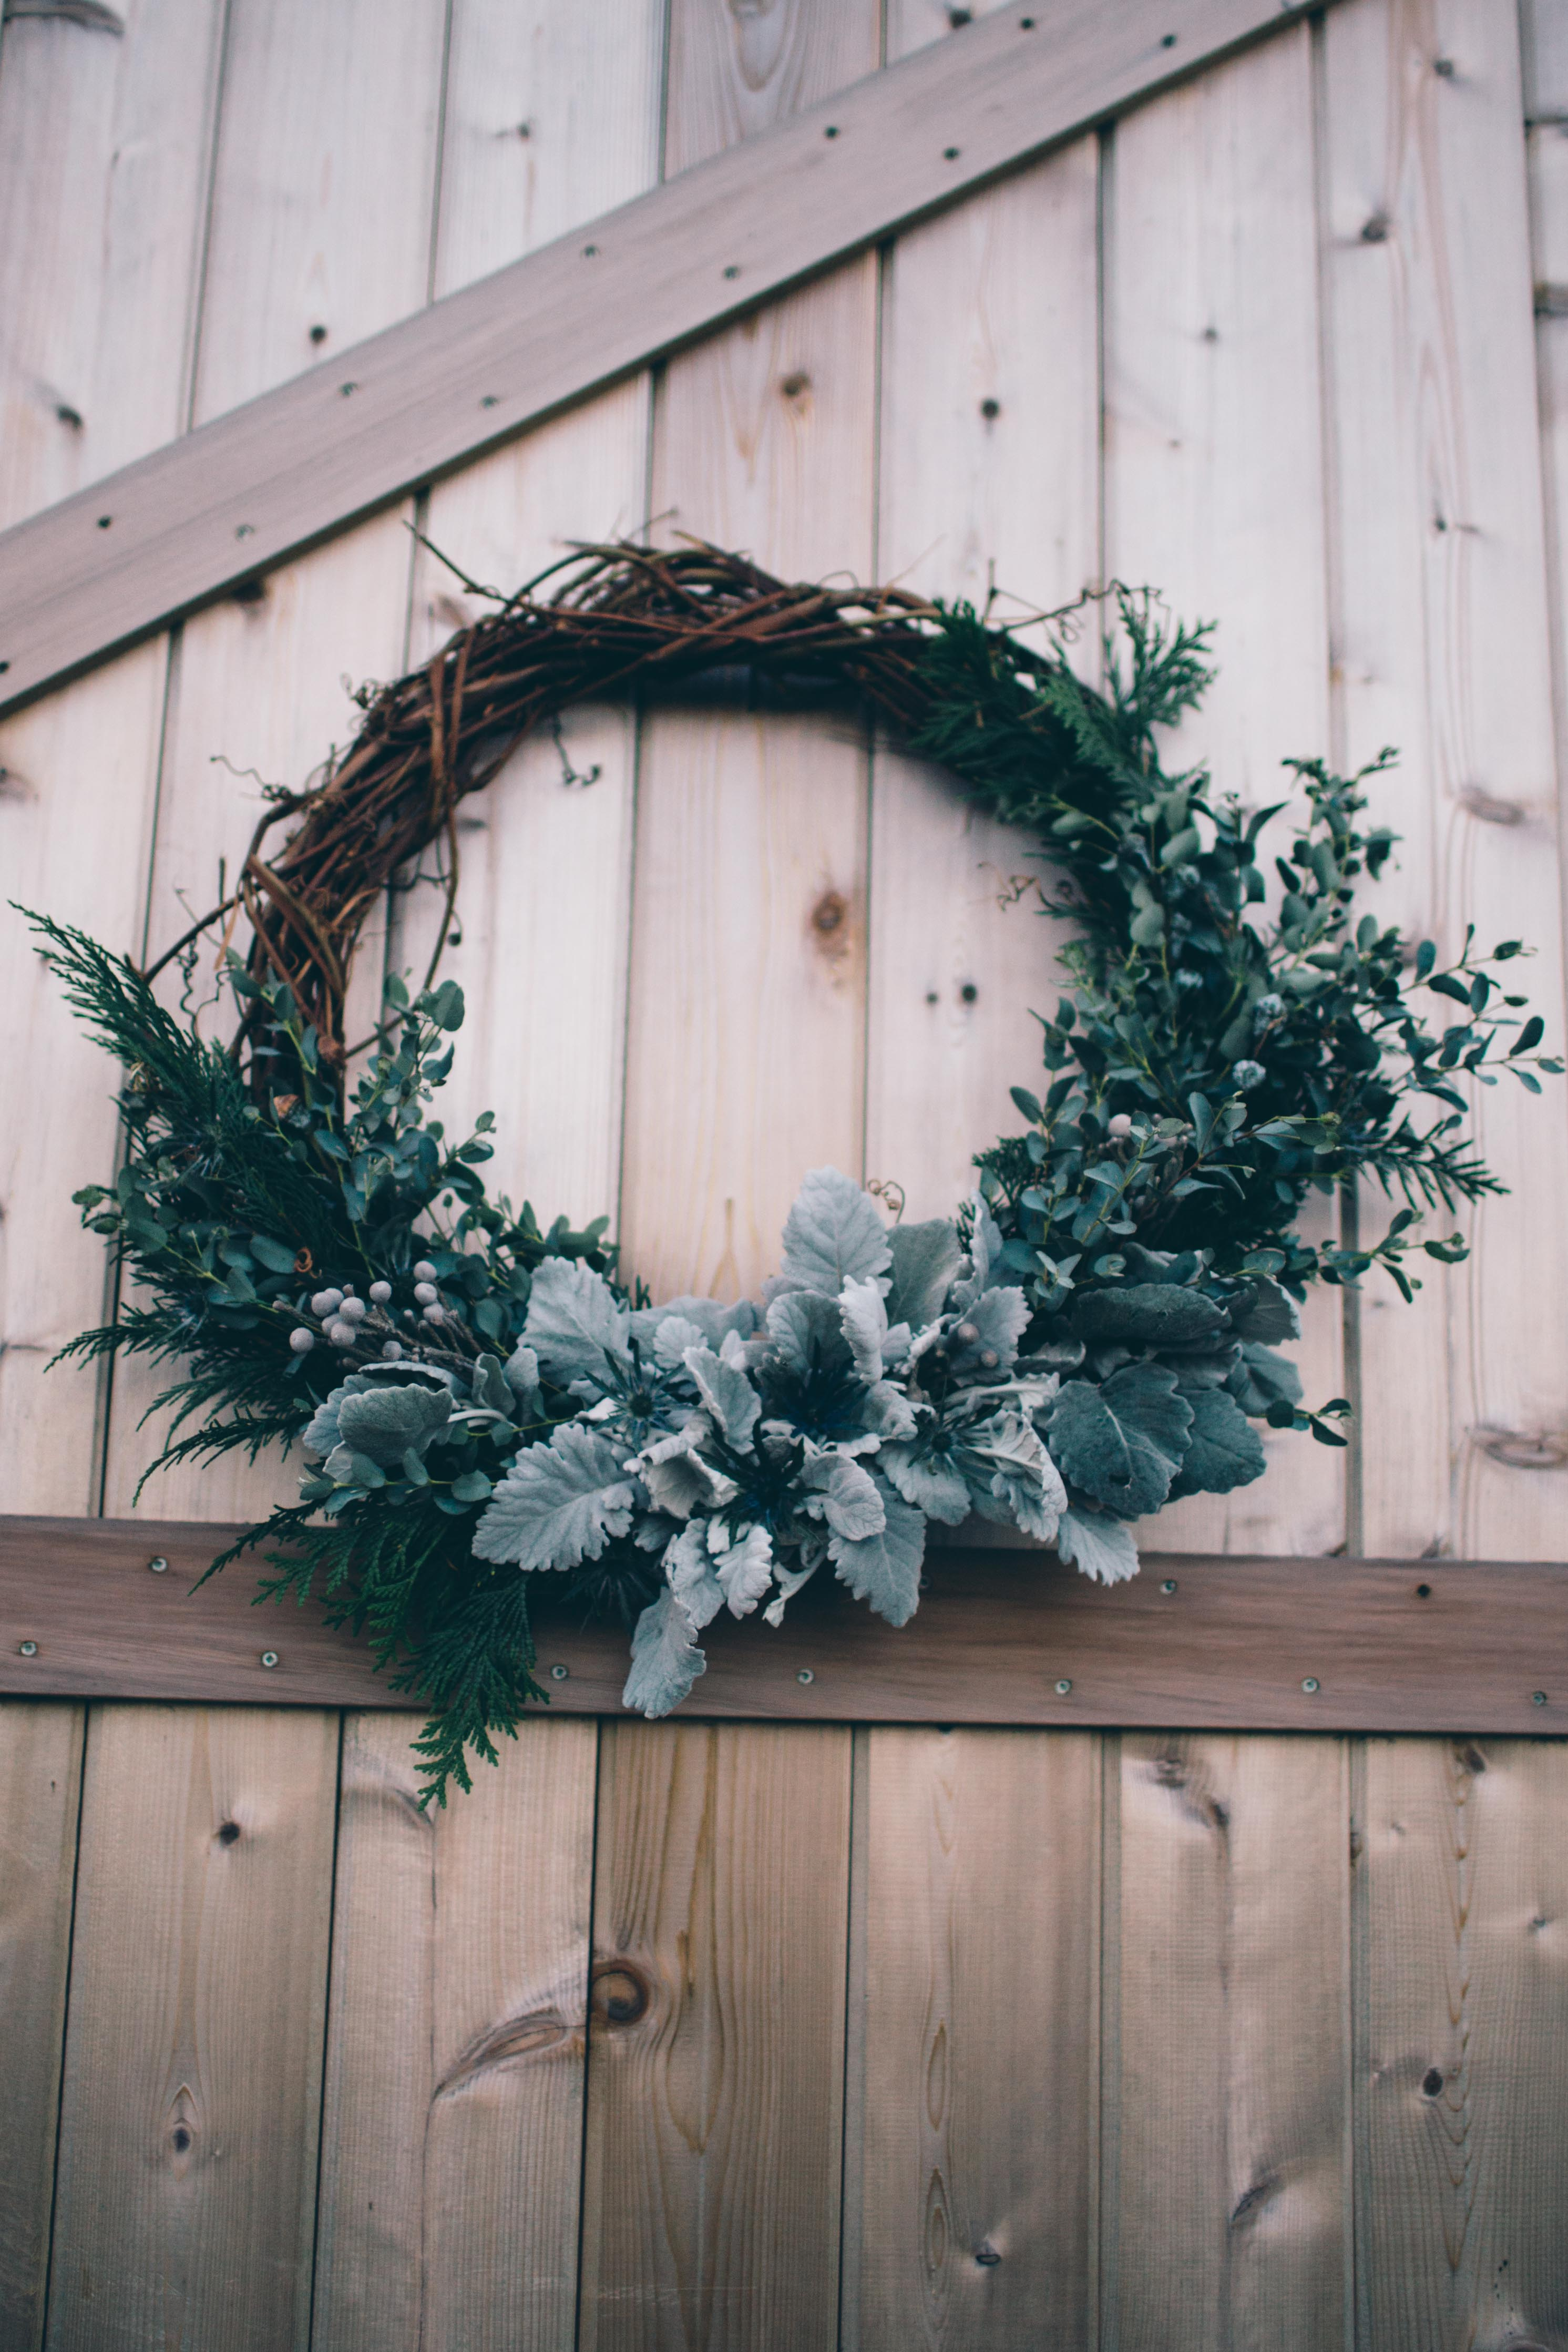 Jess Ann Kirby will be attending wreath decorating workshops in Newport and Providence Rhode Island this holiday season